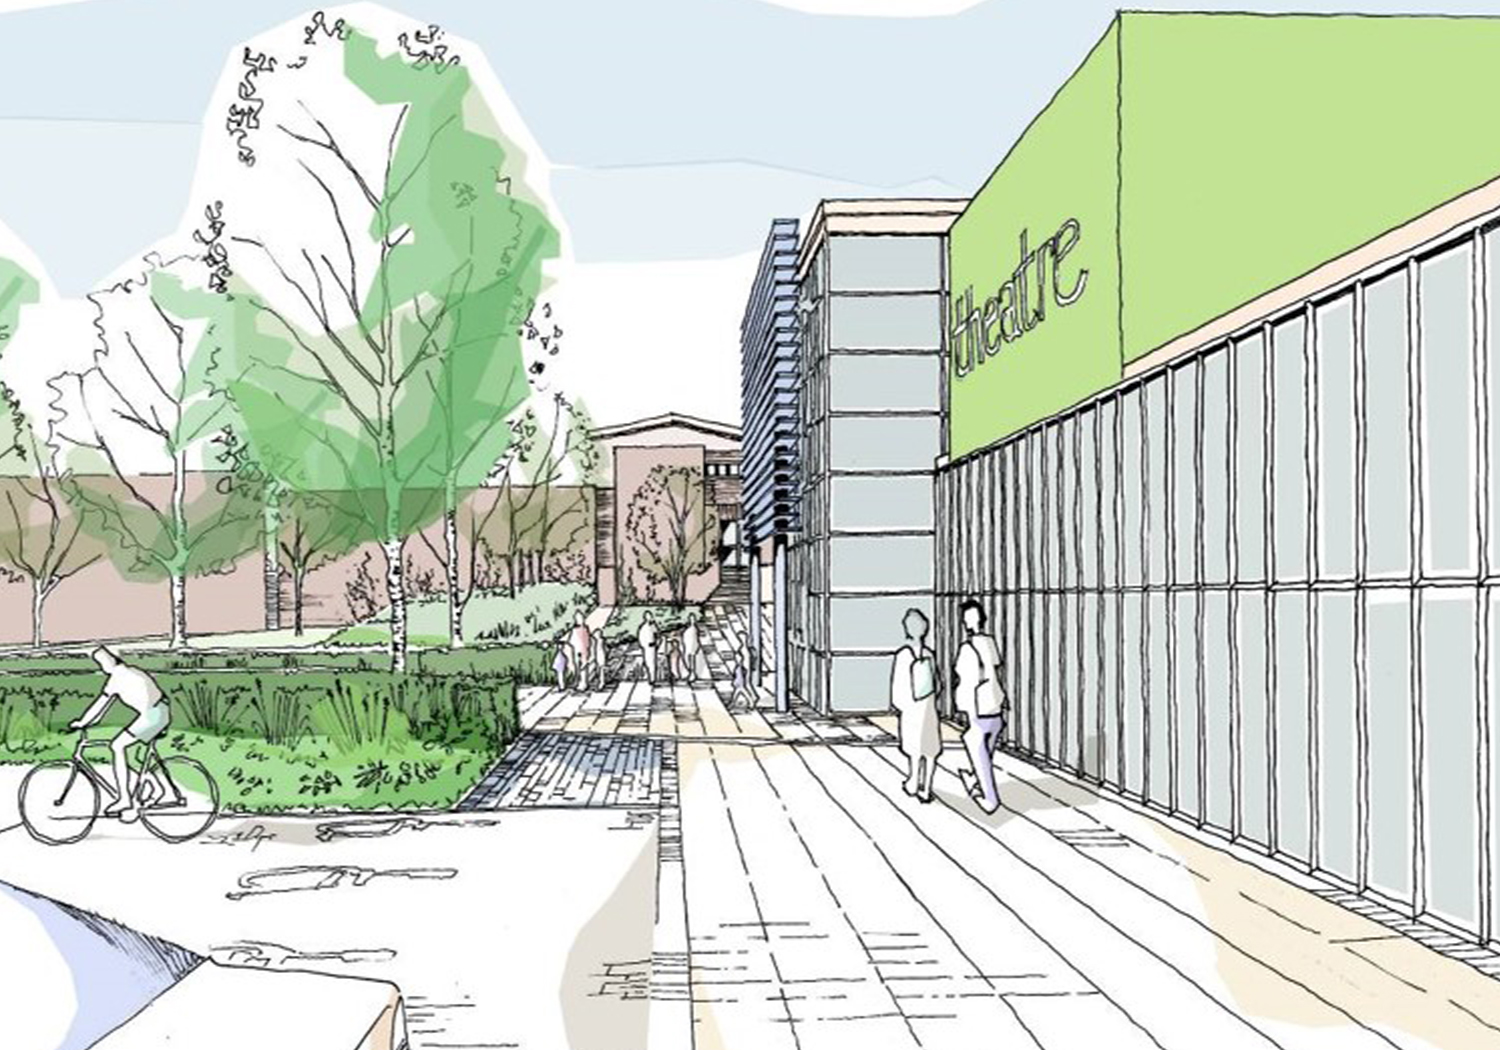 Projects-Education-Luton-TheatreSketch-1500x1050